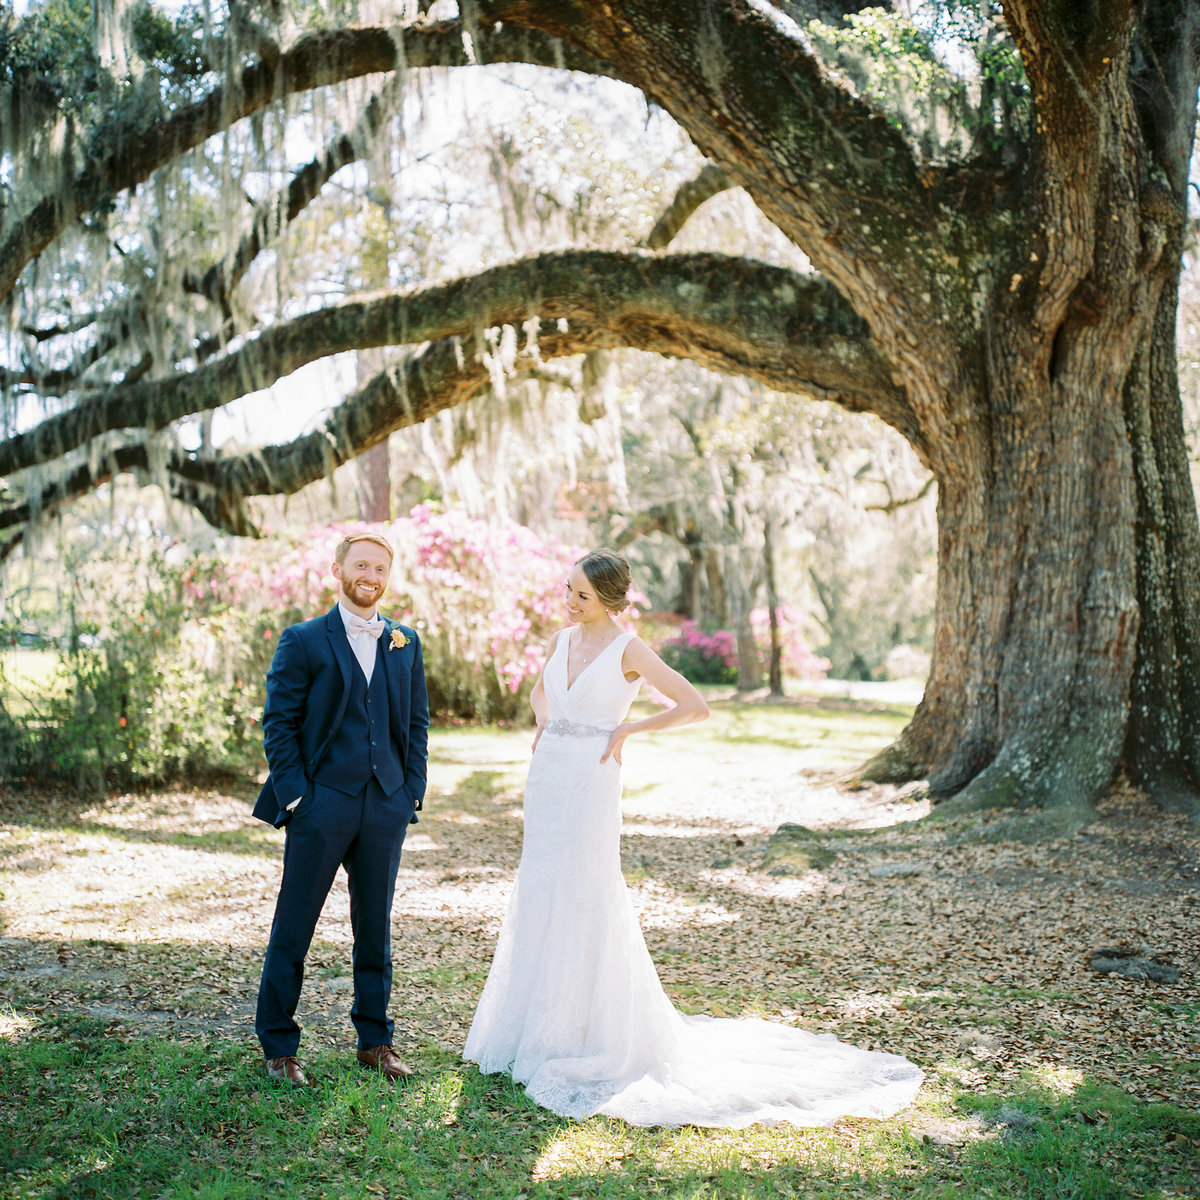 charleston-wedding-venues-magnolia-plantation-philip-casey-photography-024